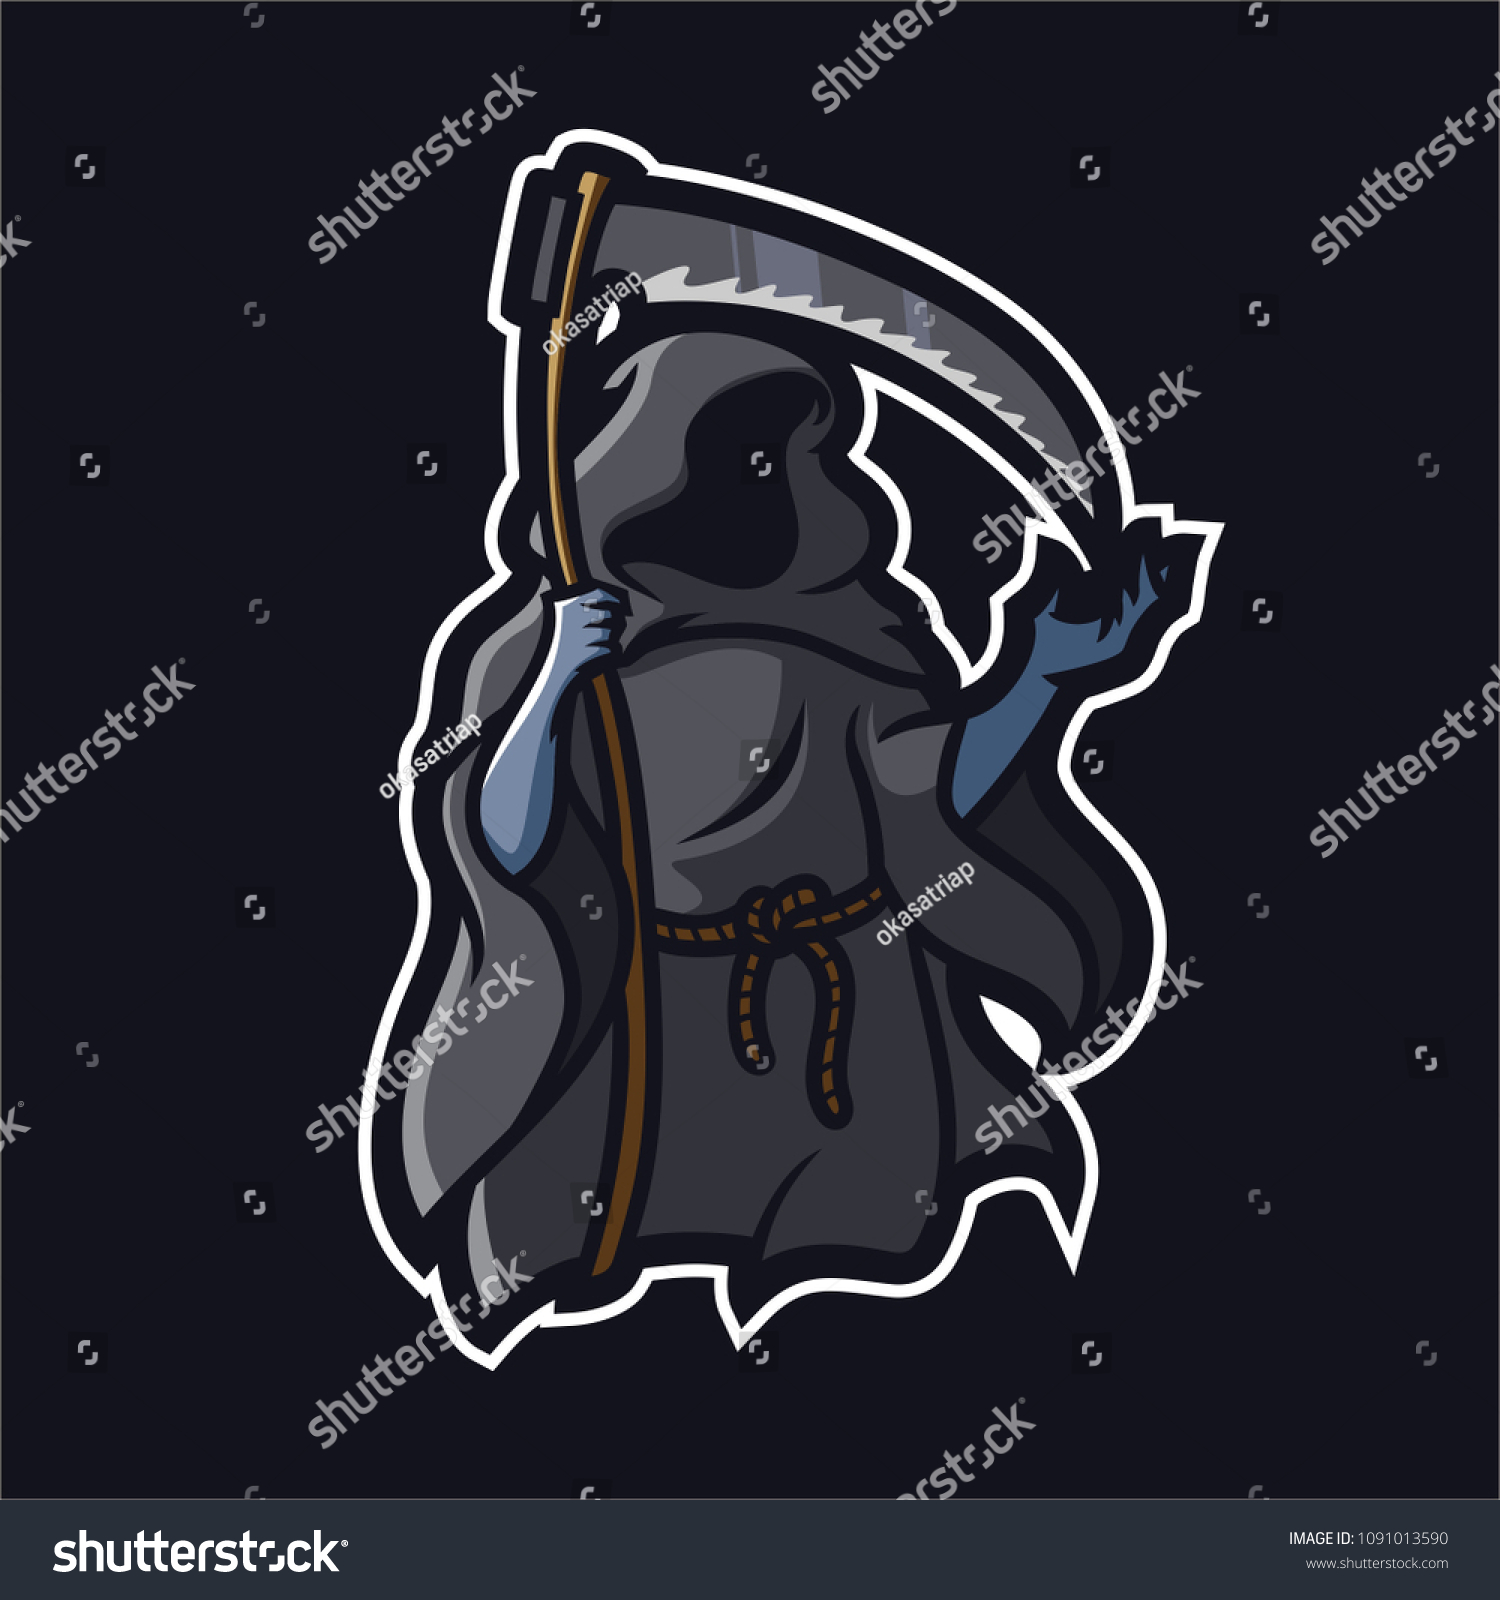 grim reaperangel death esport gaming mascot stock vector royalty